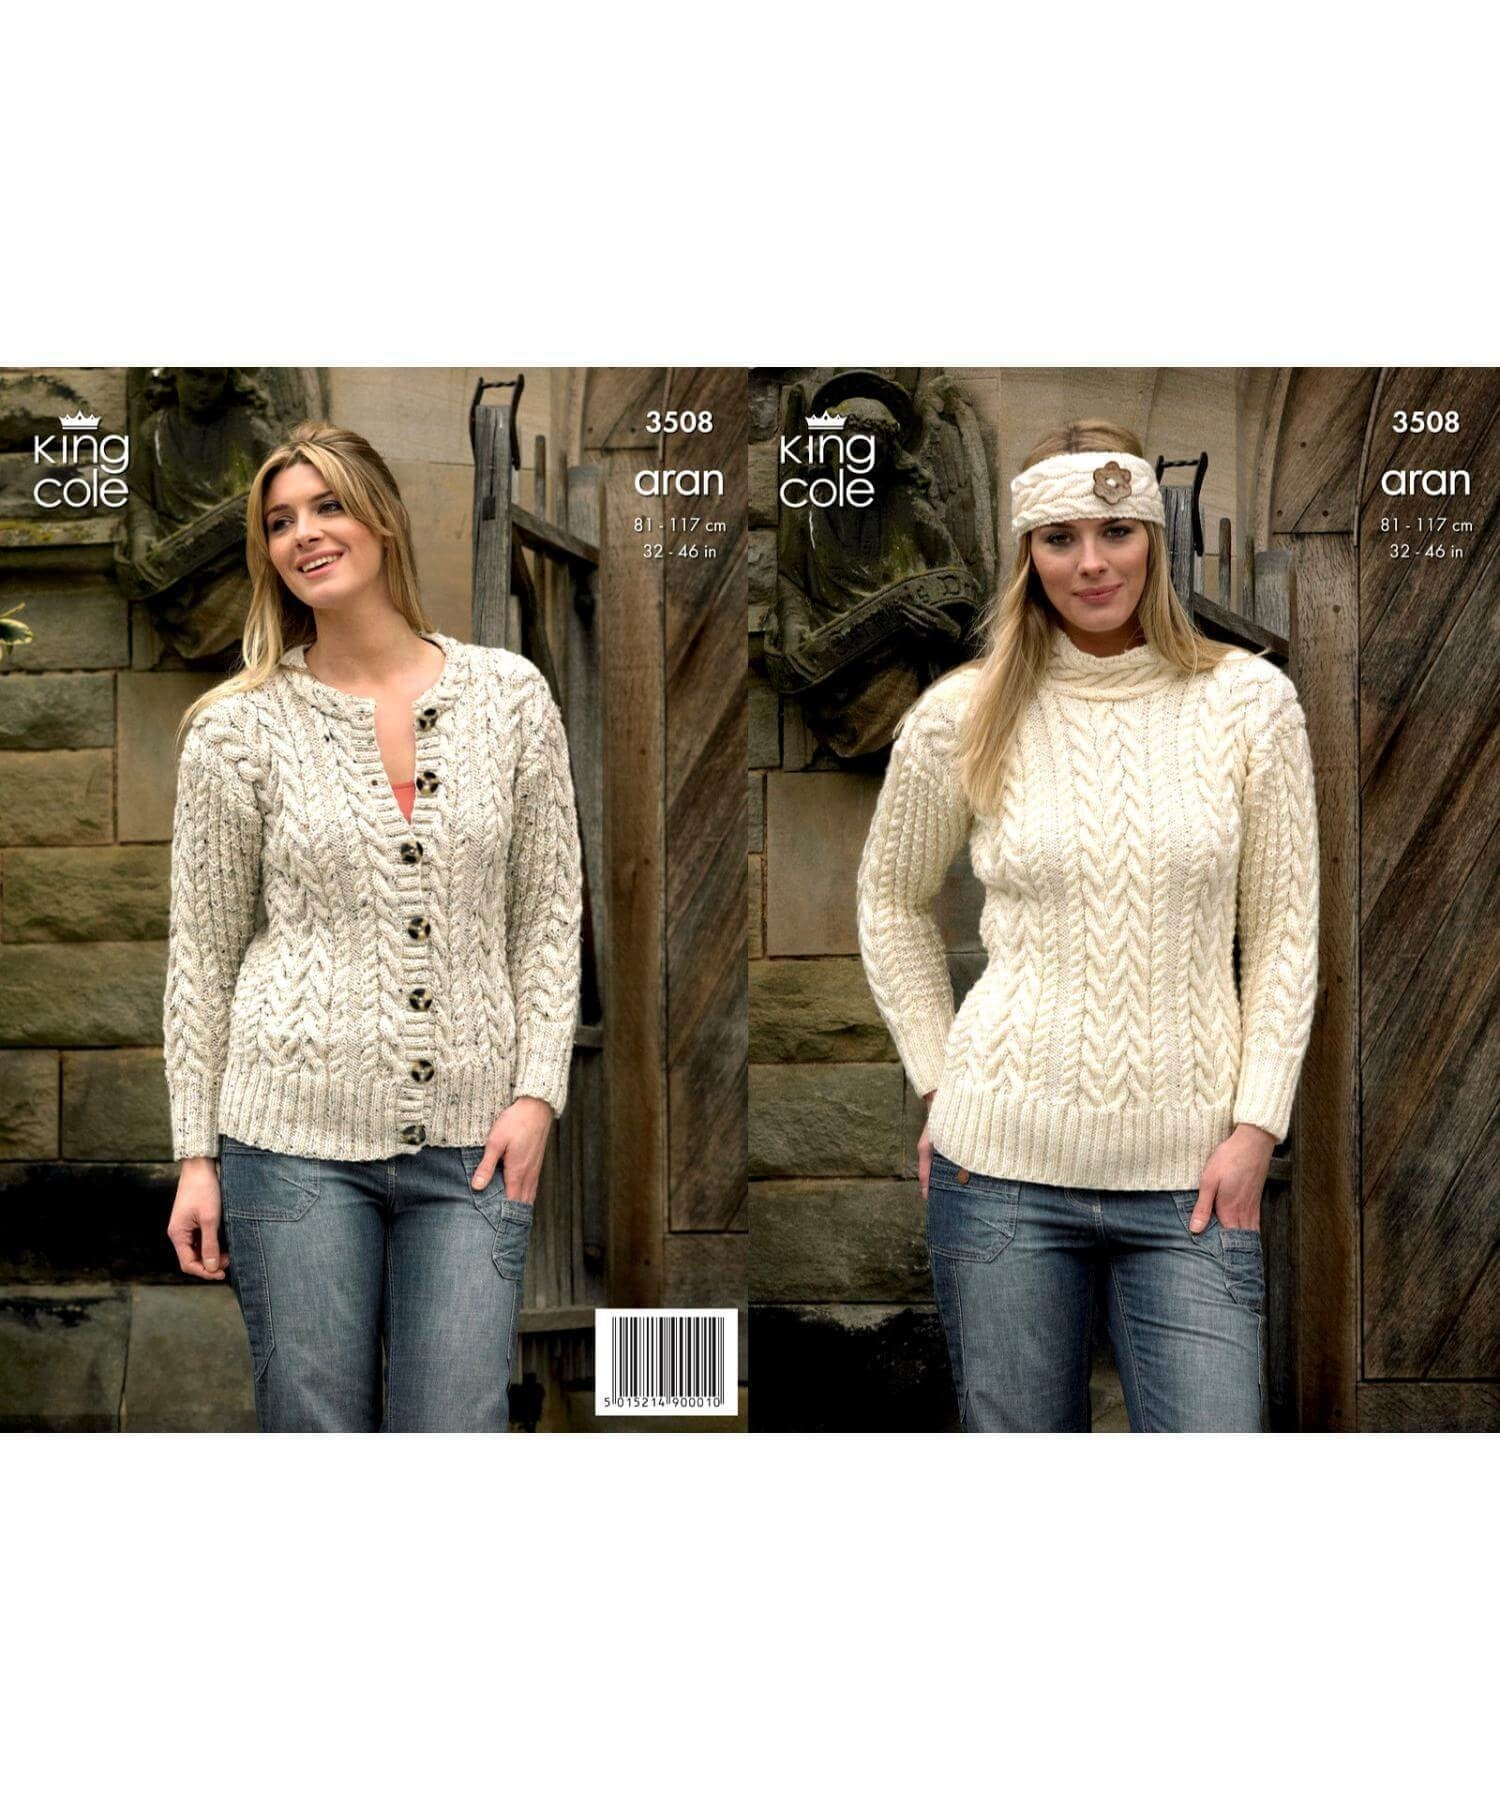 King Cole Aran Pattern 3508 - [Springwools] - Knitting - Irish Gifts